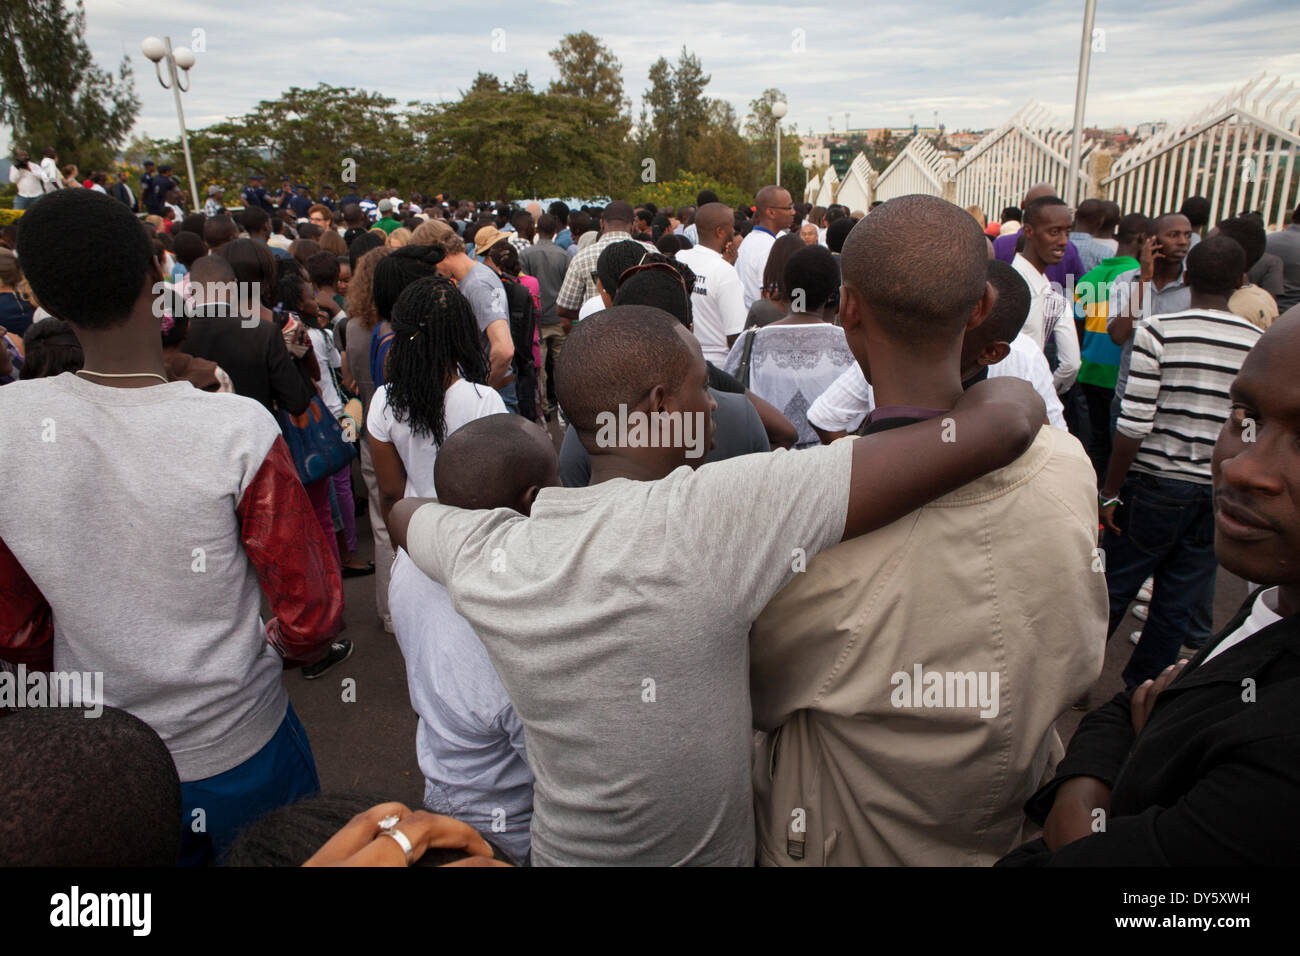 Kigali, Rwanda. 7th April 2014. Rwandans take part in 'Kwibuka Twiyubaka' Walk to Remember. The walk started at the Rwandan Parliament and ended at Amahoro stadium. This year marks the 20th anniversary of the genocide against the Tutsis. During the approximate 100-day period from April 7, 1994 to mid-July, an estimated 500,000–1,000,000 Rwandans were killed, constituting as much as 20% of the country's total population and 70% of the Tutsi then living in Rwanda. Credit:  Tom Gilks/Alamy Live News - Stock Image